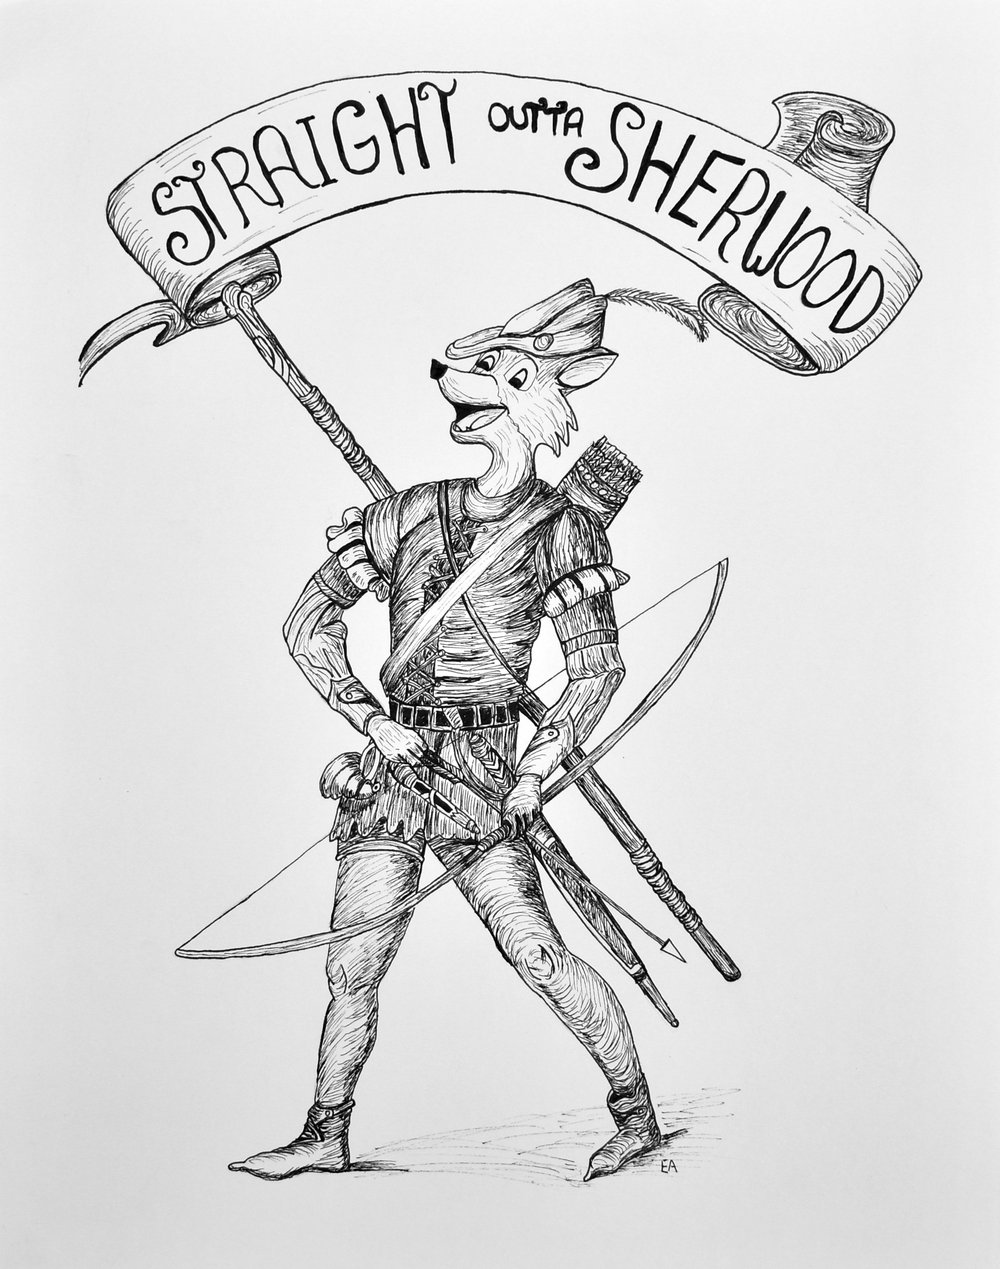 """Straight out of Sherwood"" 11x14 pen on Strathmore 400 series paper."